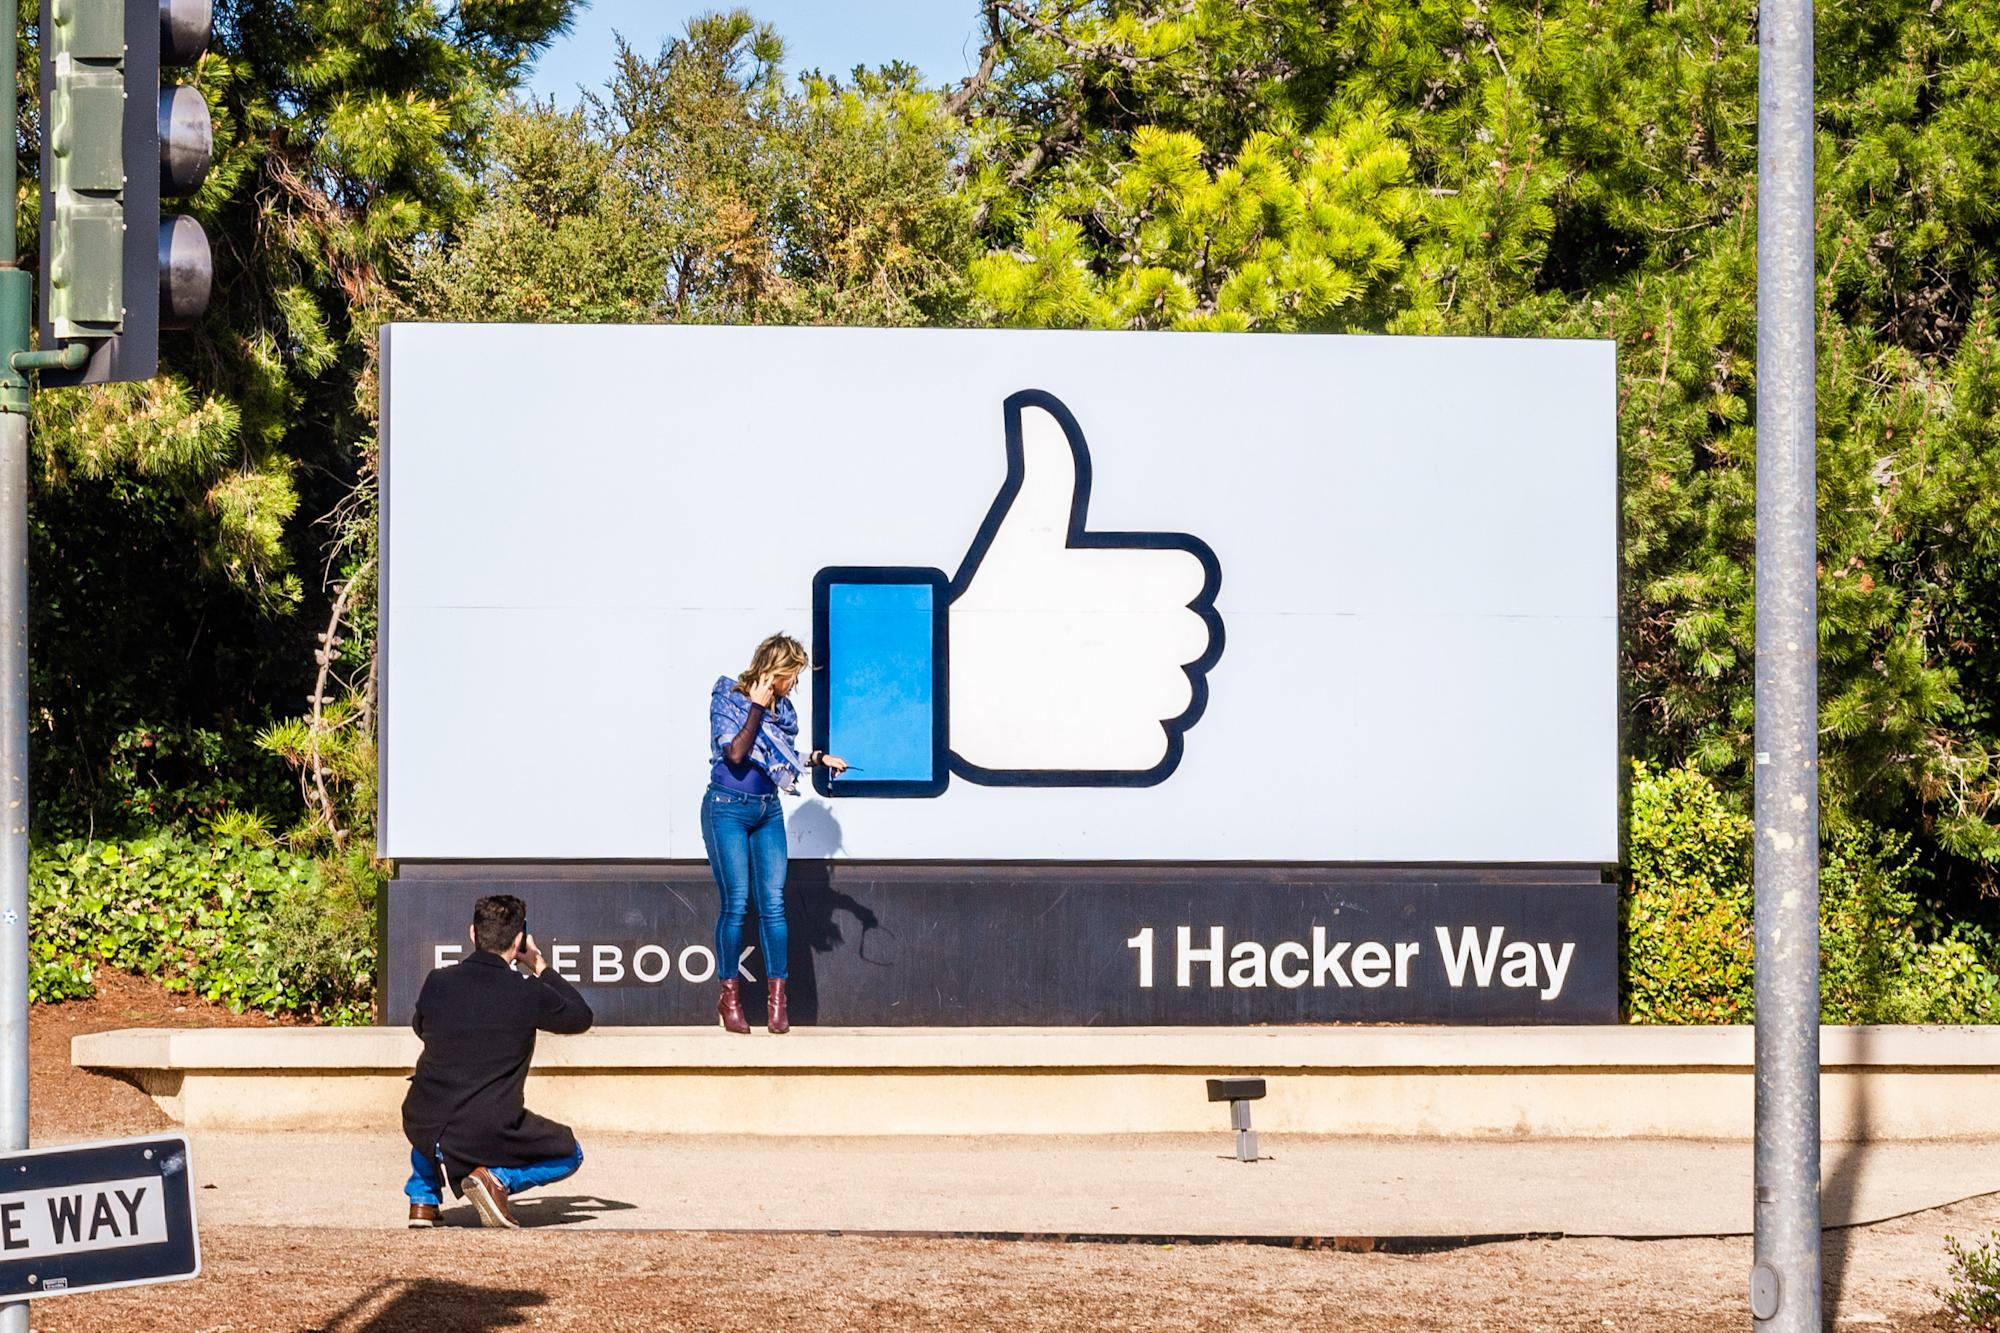 Data-scraping tool can link millions of Facebook profiles to email addresses